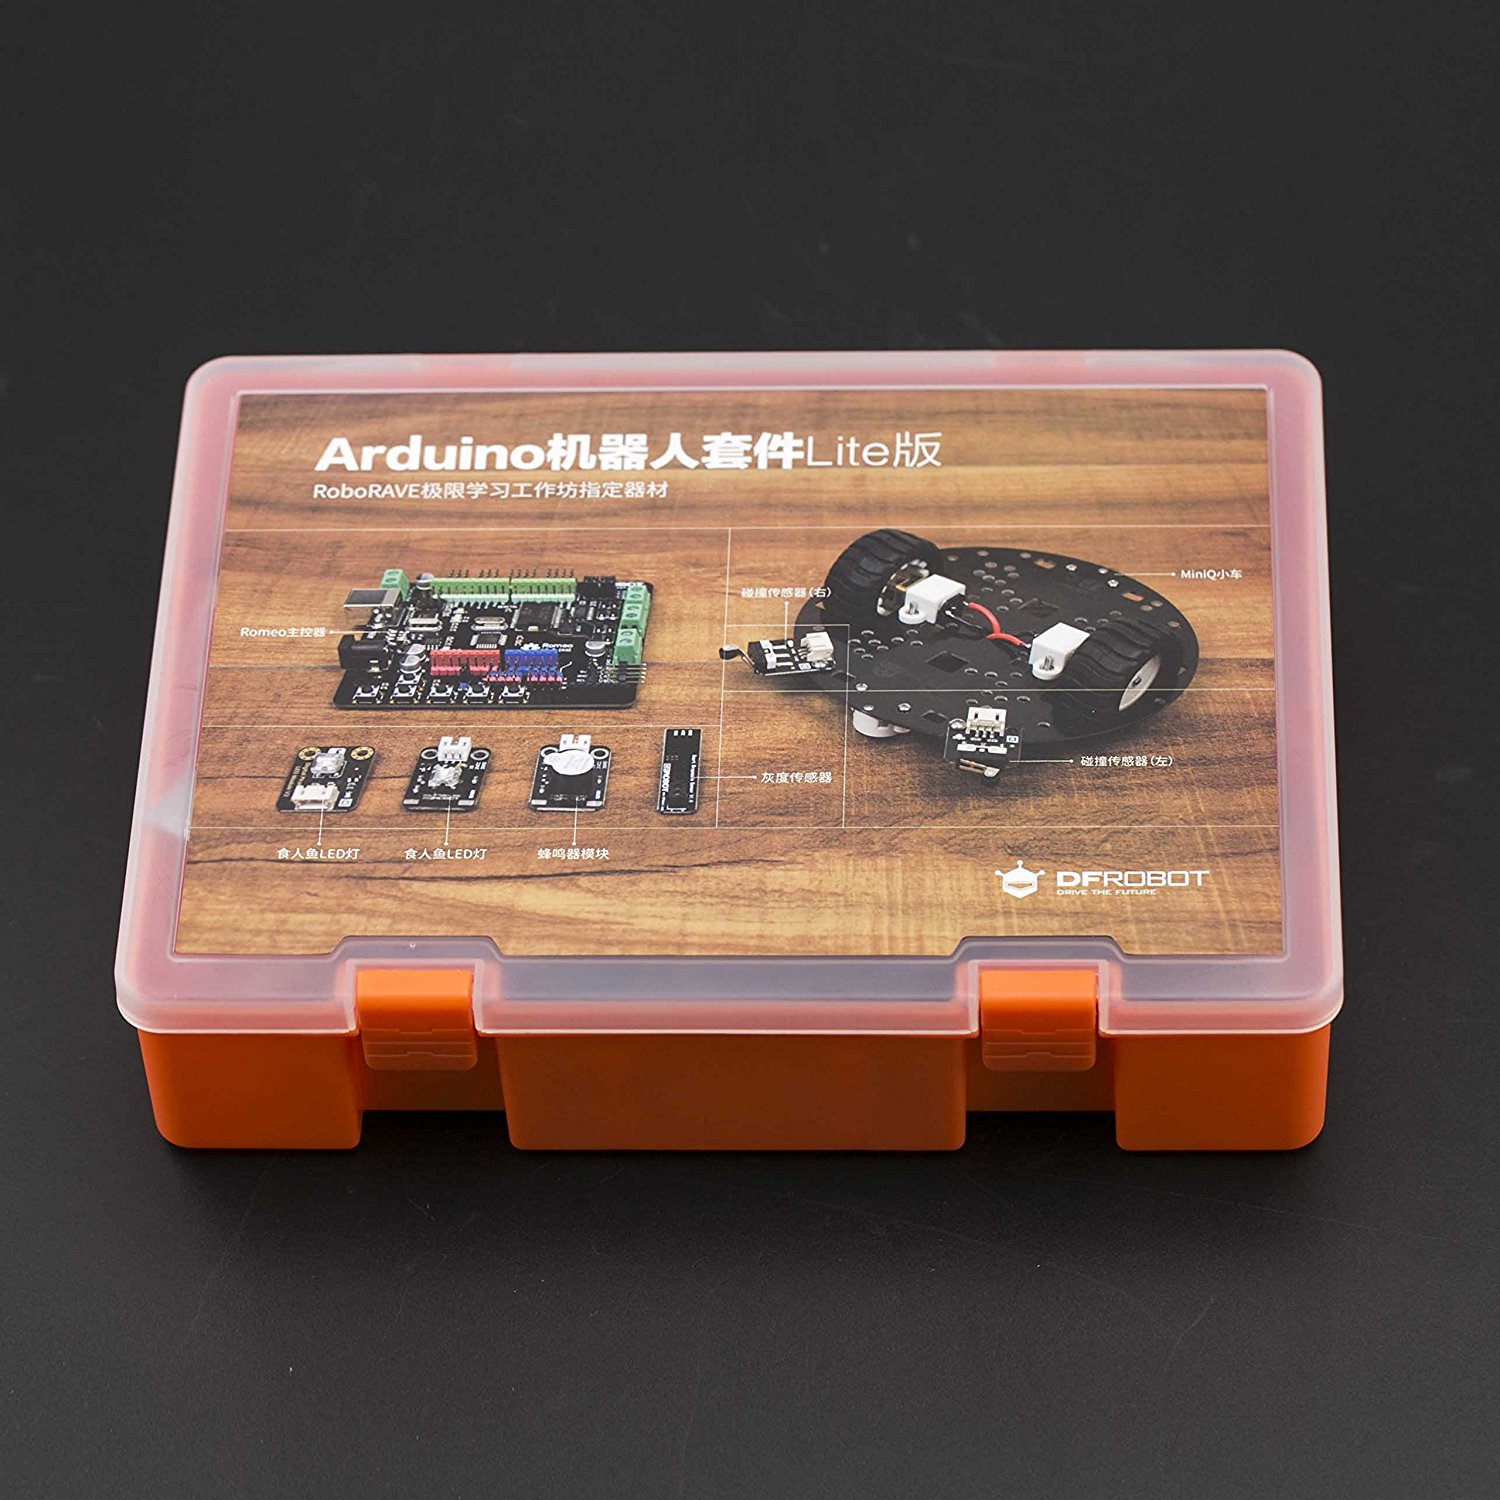 Angelelec DIY Open Sources Robot Kit, Arduino Robot Kit Lite Edition, Contains Robot Platform, Controllers, Sensors, A Variety of Spare Parts, SO That Students Can Quickly Build an Interactive Robot.